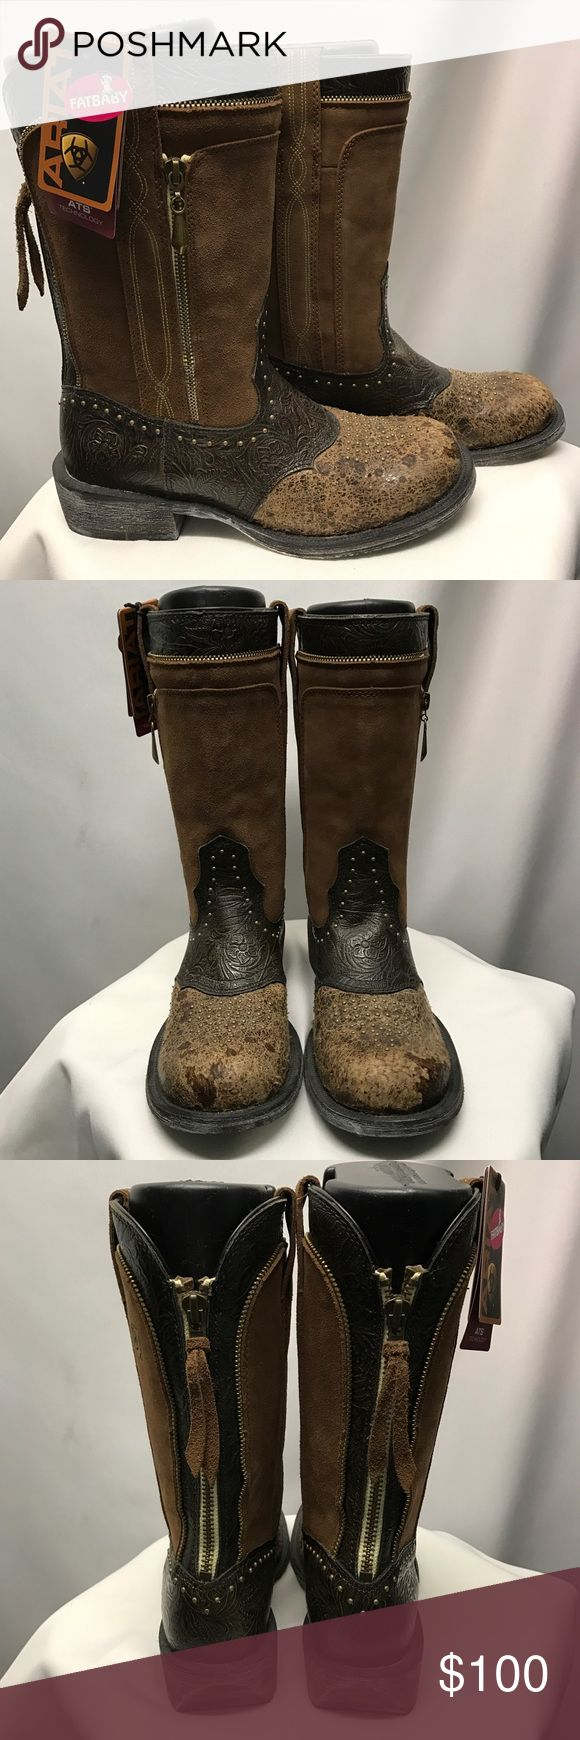 ARIAT fatbaby boots ARIAT Fatbaby brown suede & leather boots with bronze hardware. Back zipper accent & studs throughout boots make these an instant eye-catcher! Ariat Shoes